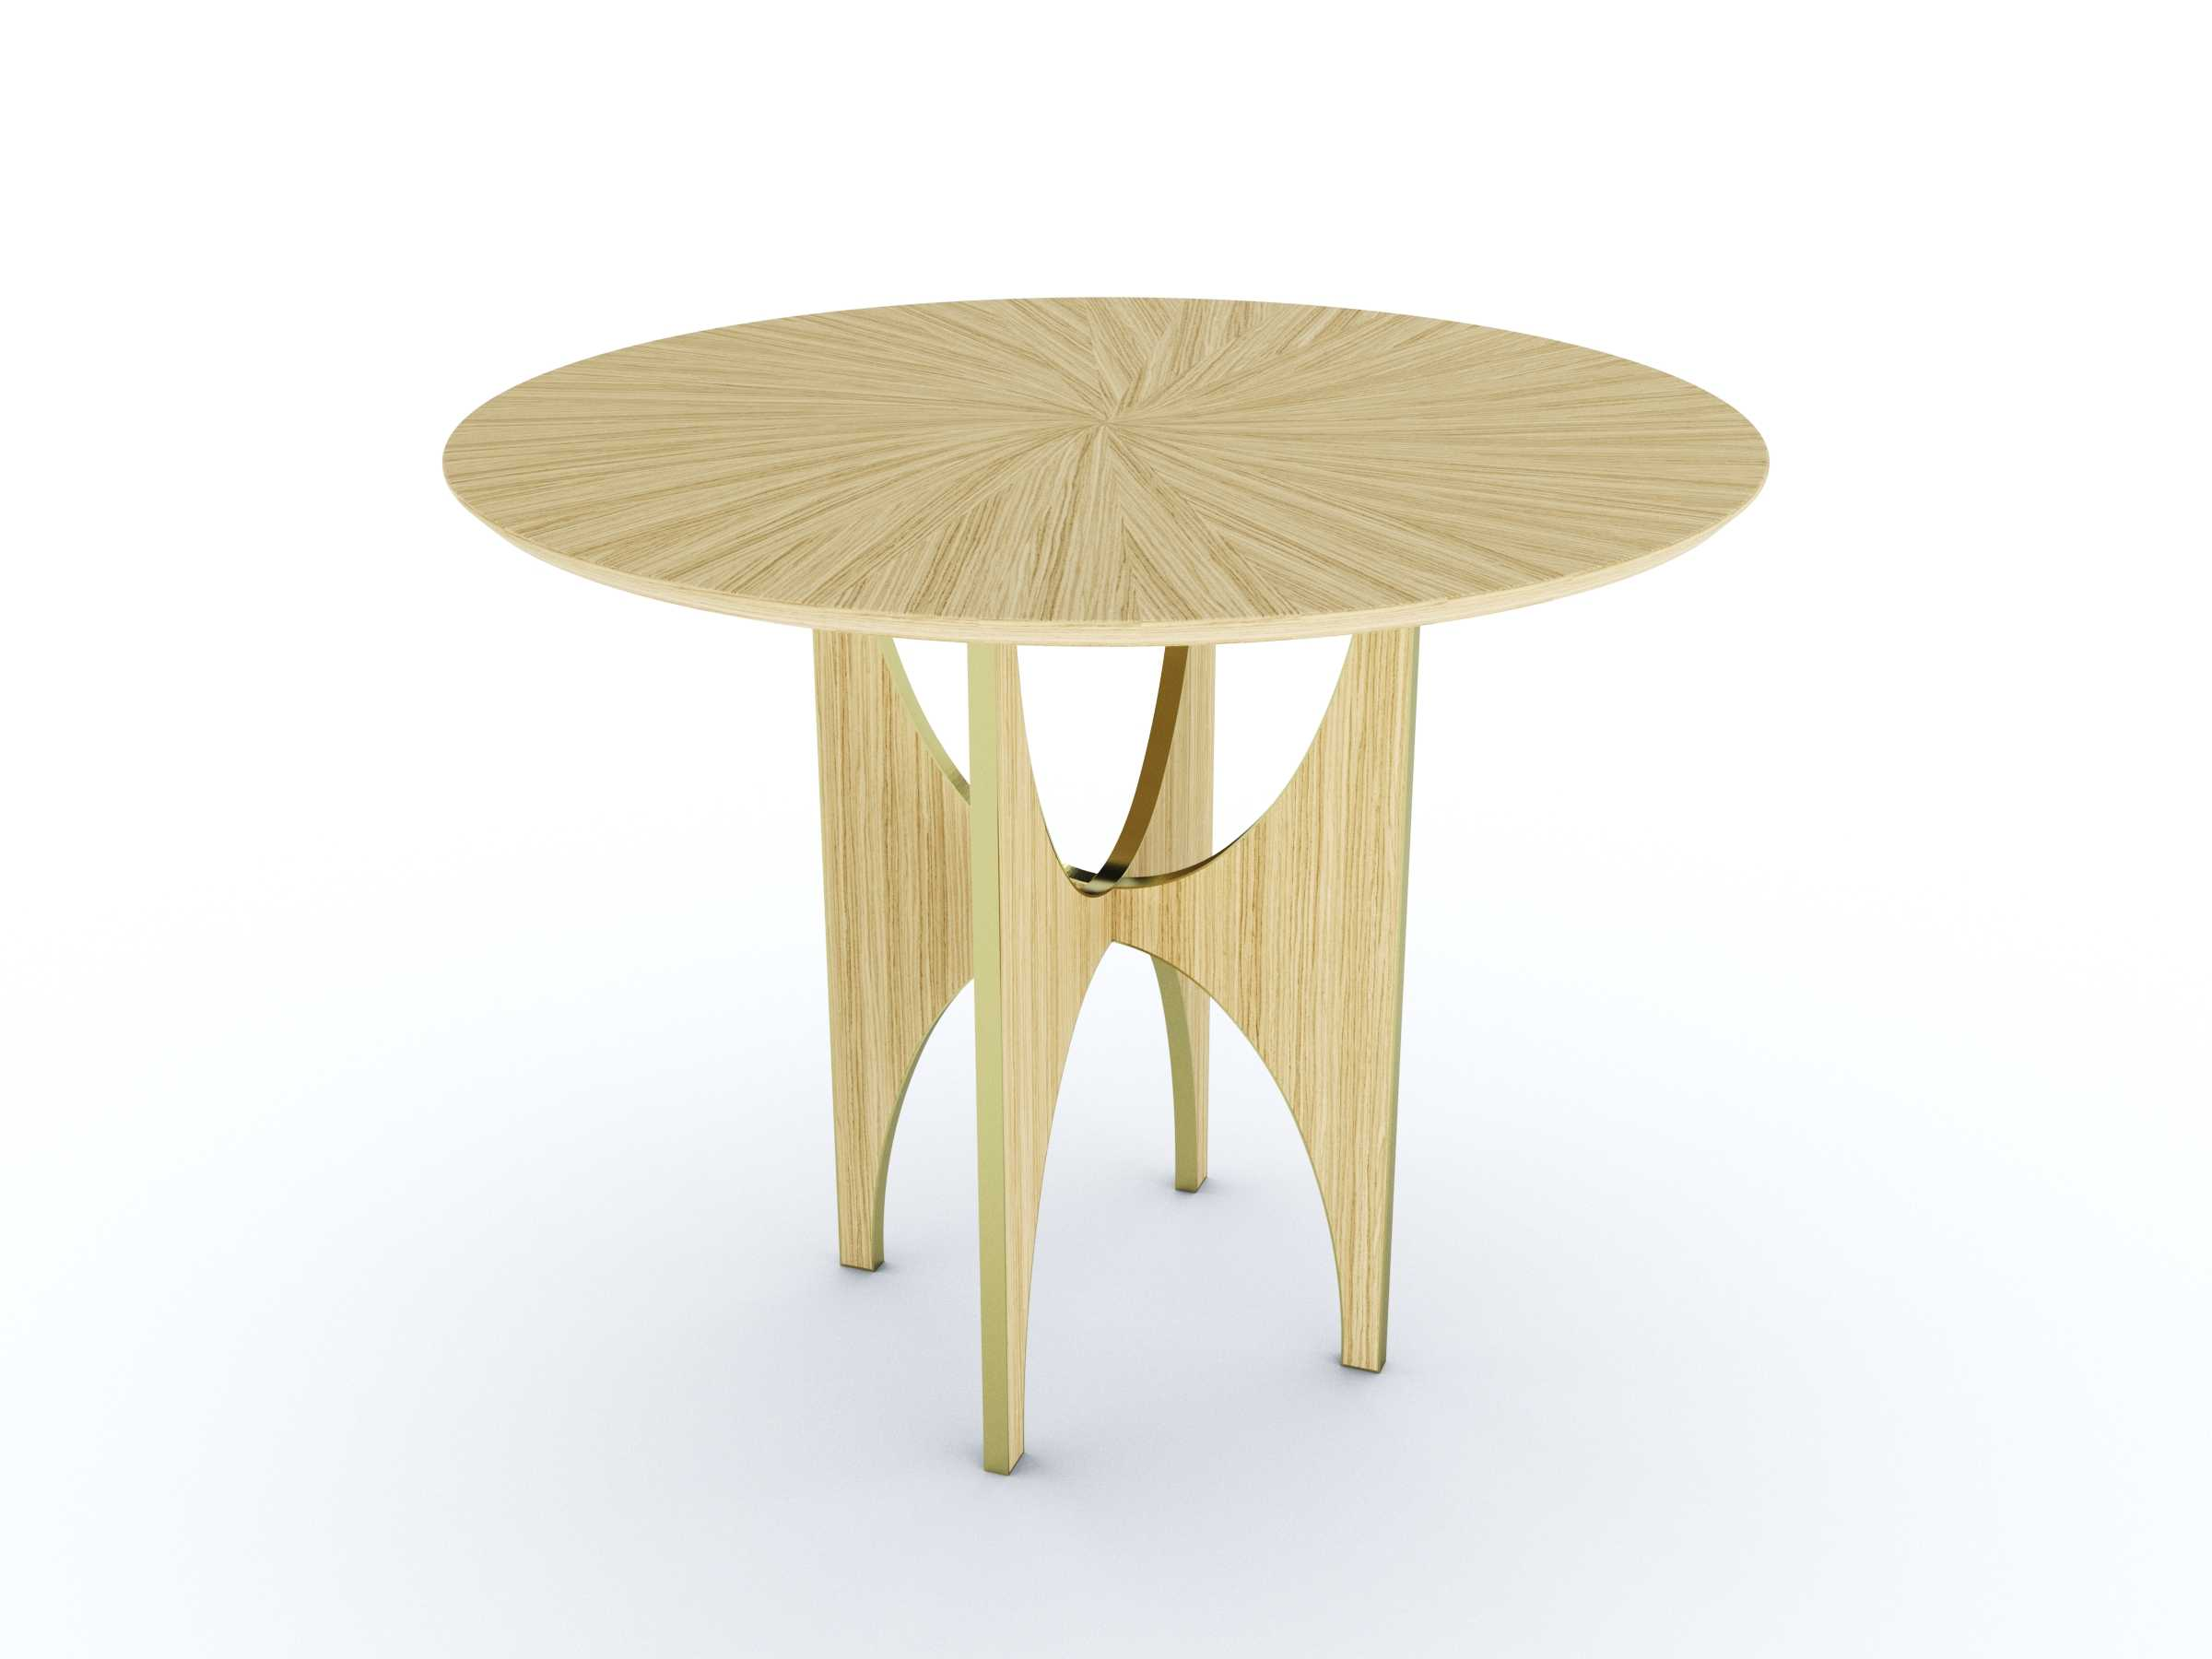 6.3_ARC-ROUND-TABLE-LIGHT_1800x2400